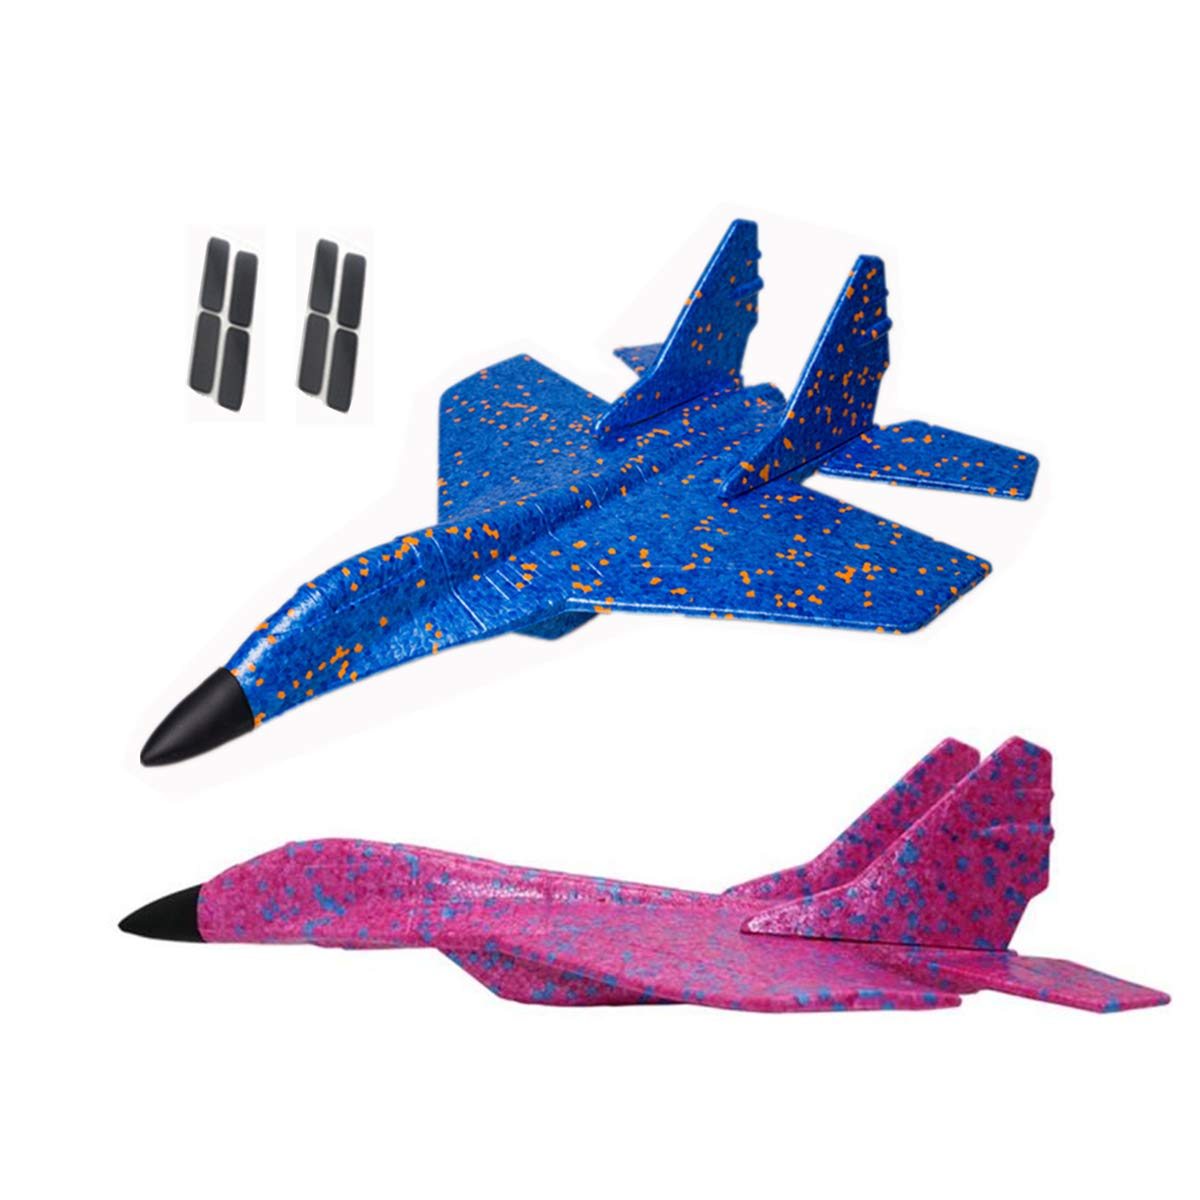 JUNBESTN Foam Airplane for Kids, 17.5'' Glider Plane, Hand Throw Flying Glider Toy for for Outdoor Sports Garden Yard Playing, Best Gift for Boys Girls (2Pack)